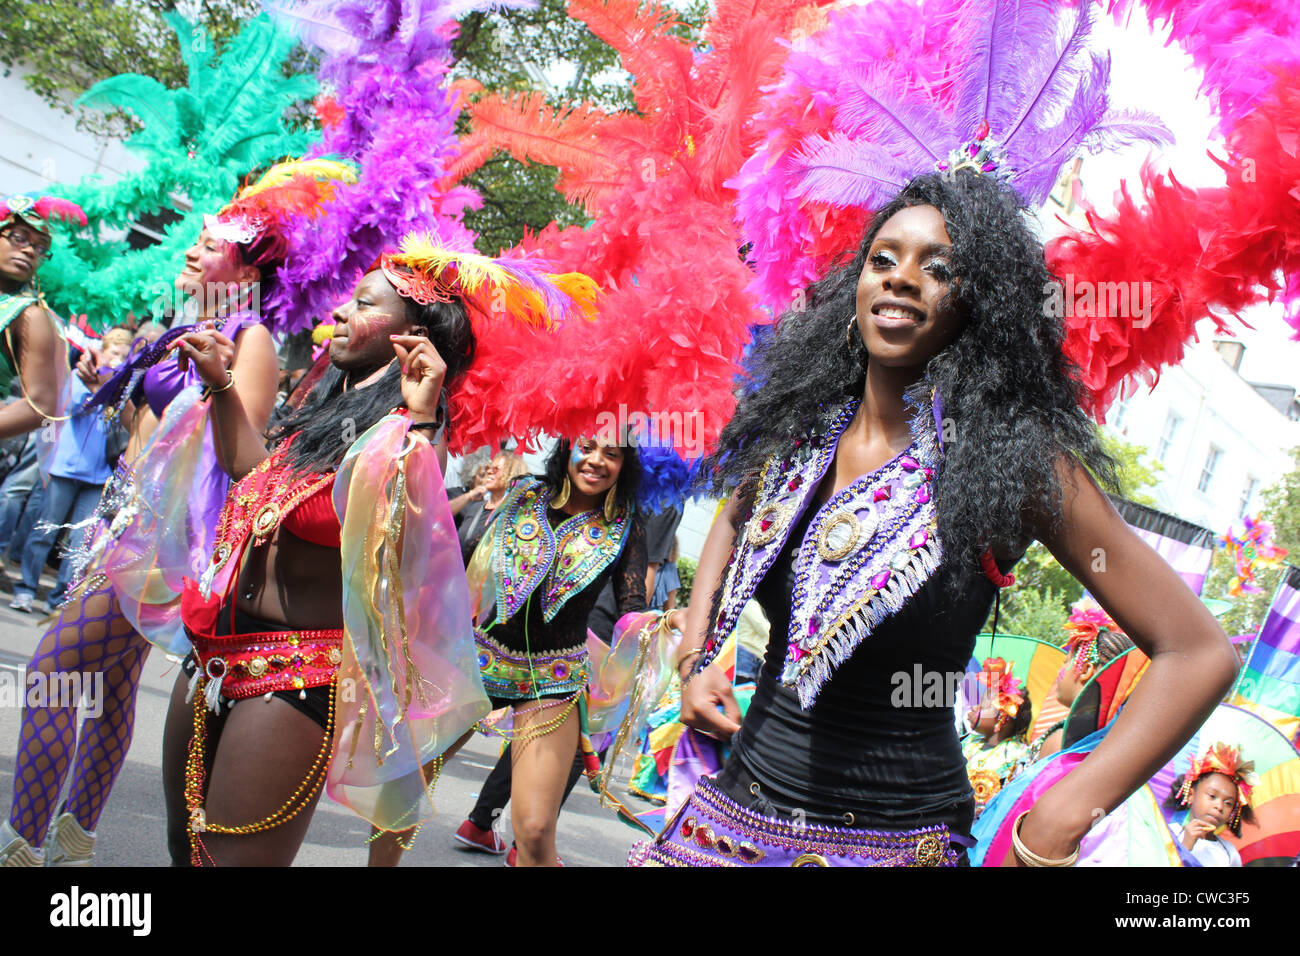 Women dancing at Parade Annual Notting  Hill Carnival 2011 - Stock Image